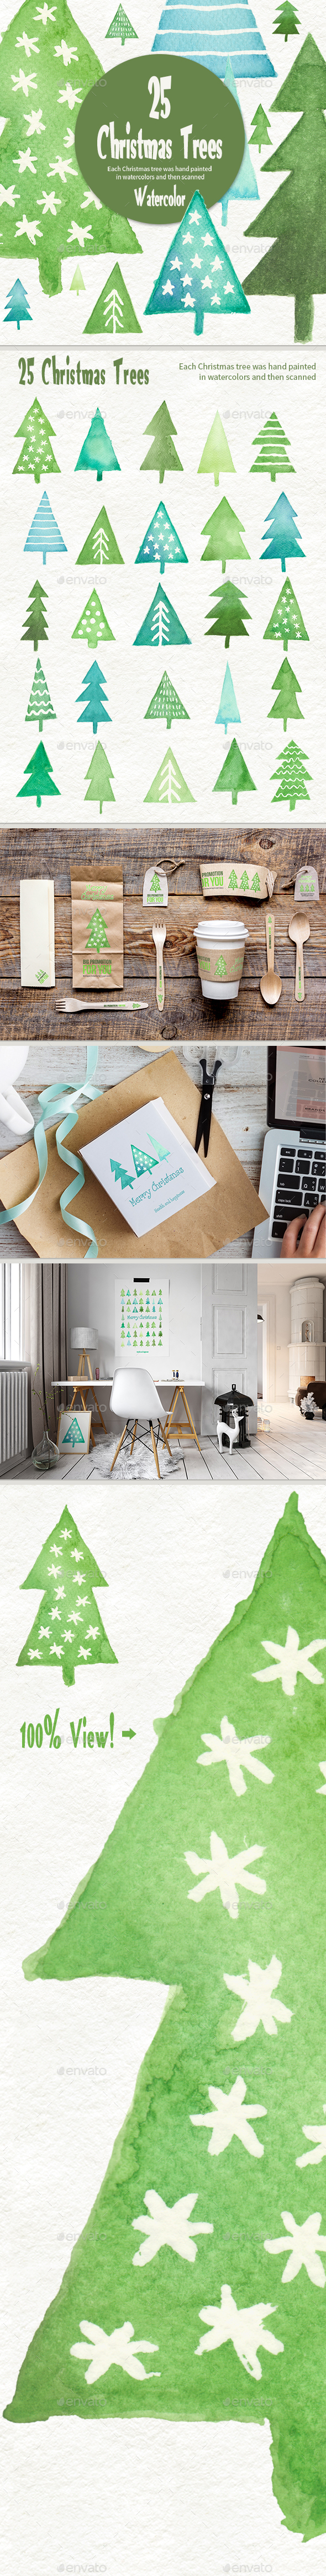 Watercolor Christmas Trees - Objects Illustrations